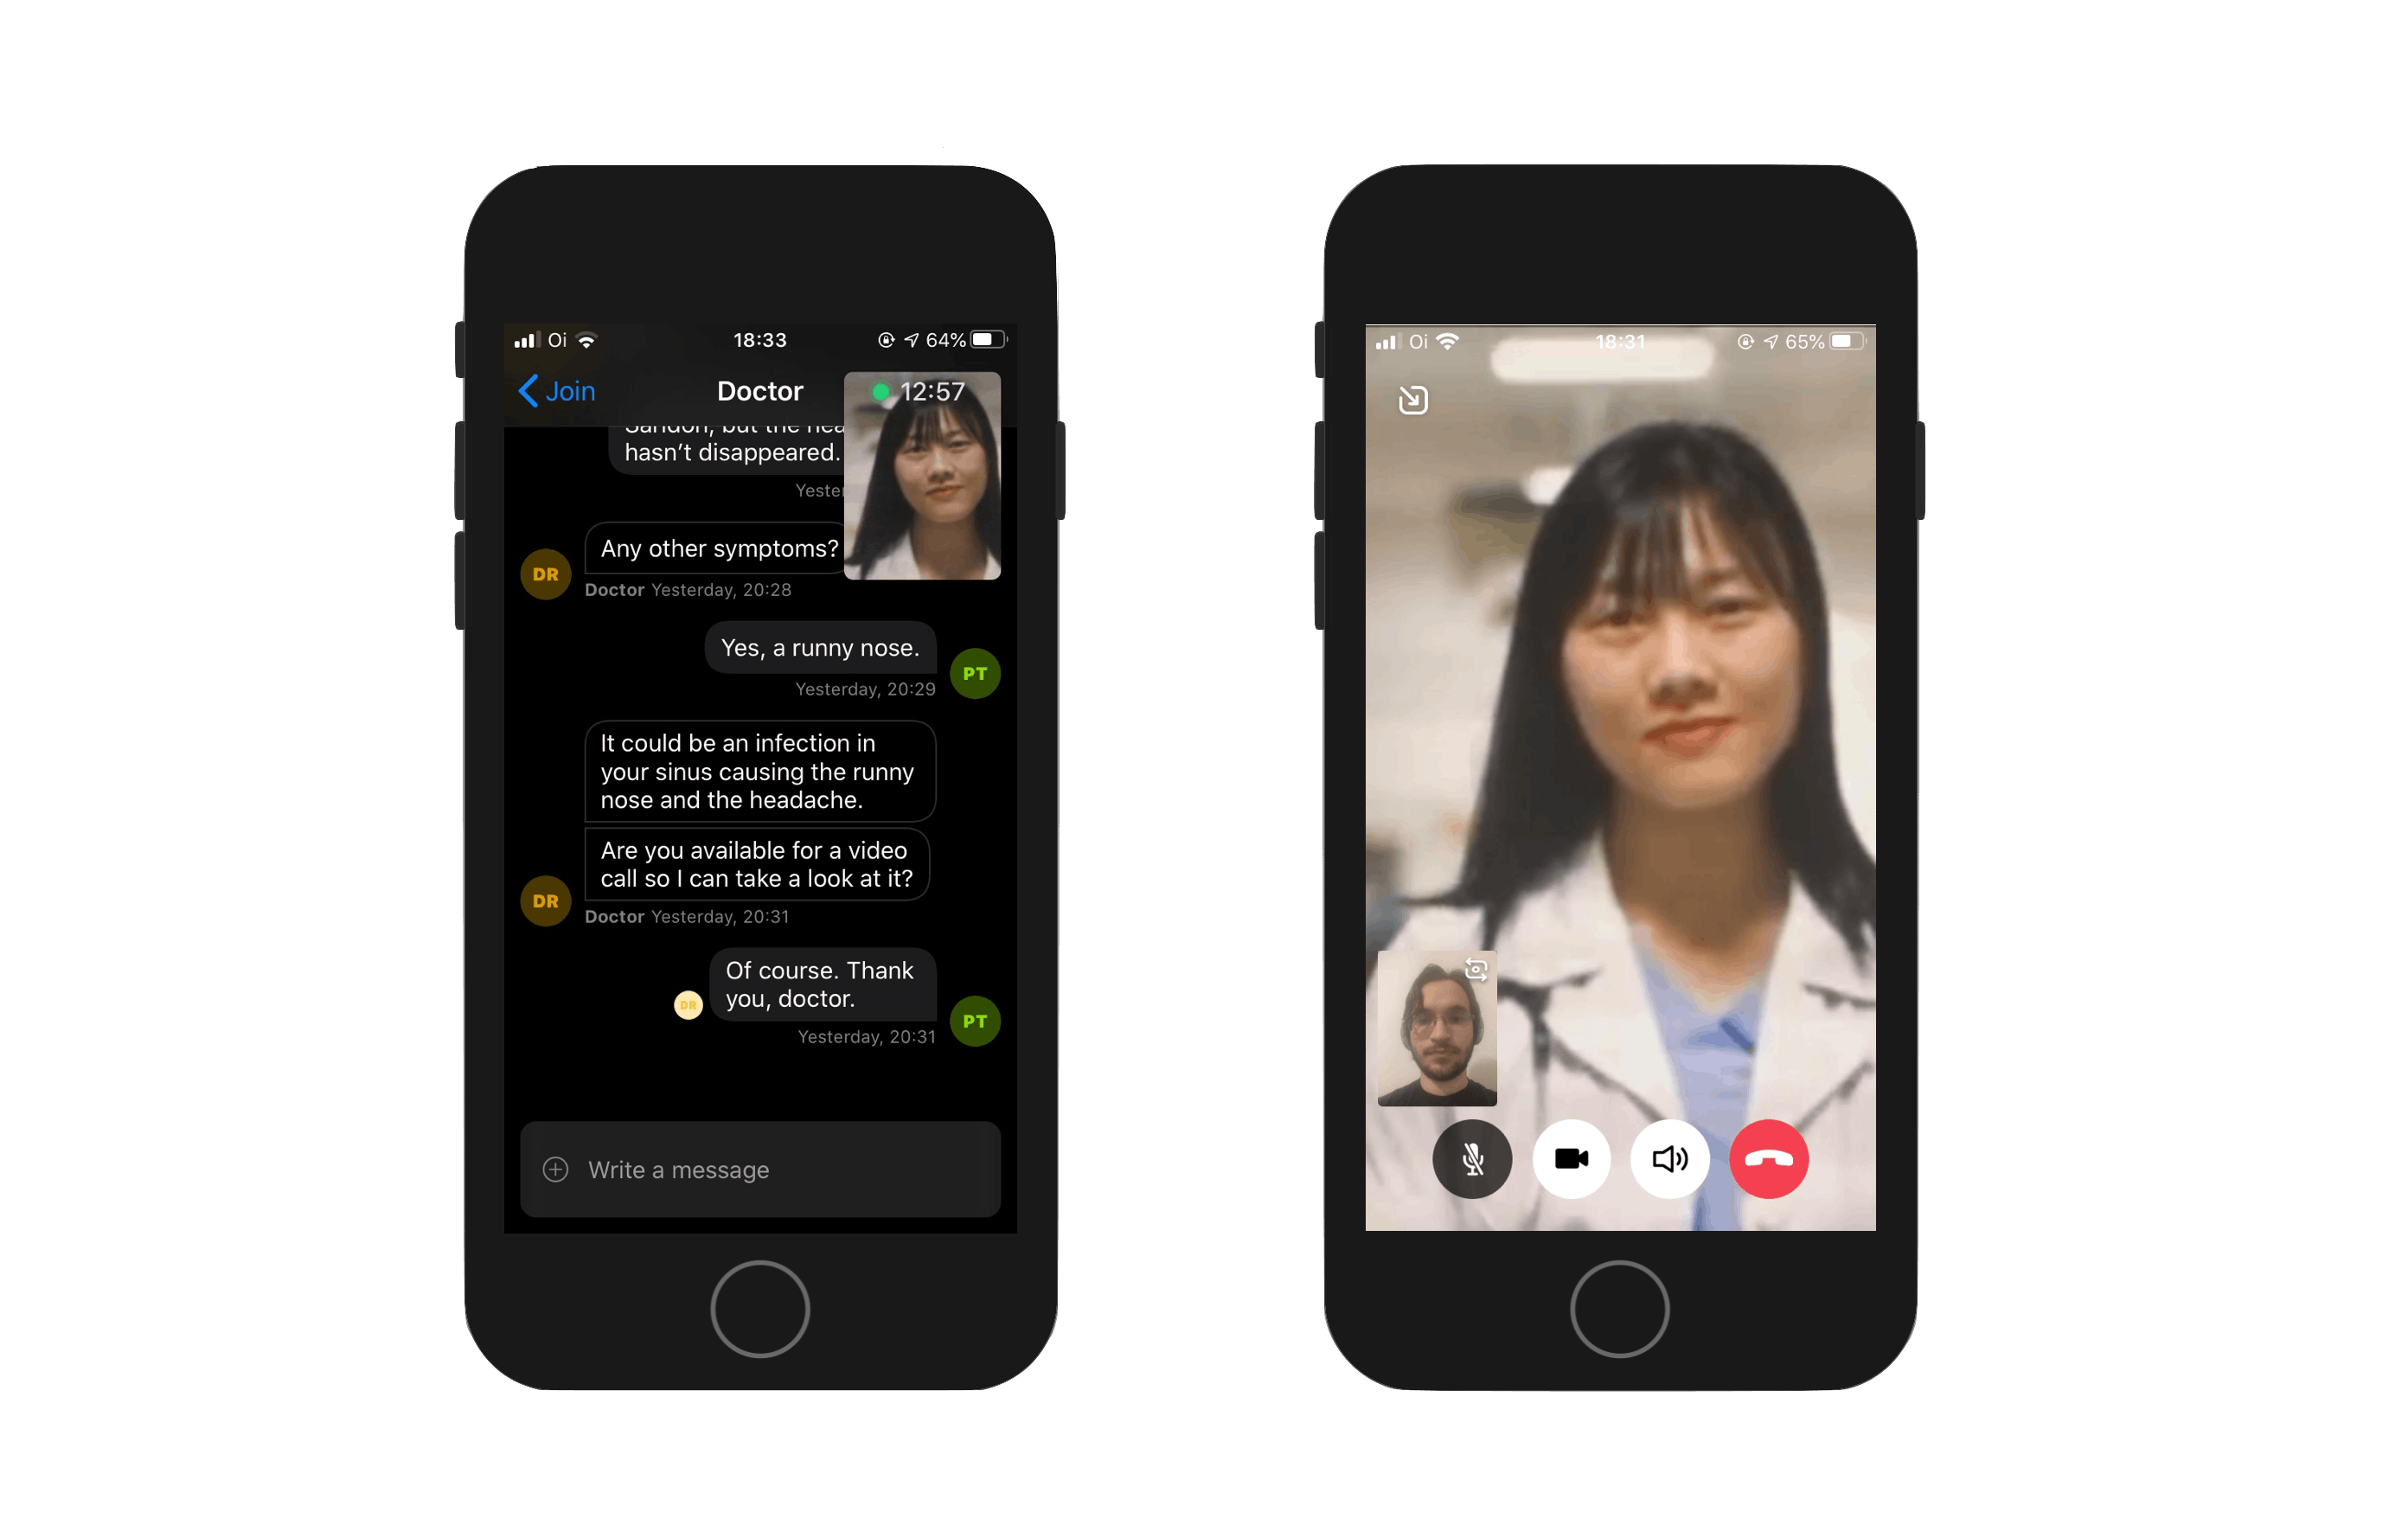 Image shows two screenshots, one from the chat screen with a small video overlay with the doctor, and another with a fullscreen video of the doctor